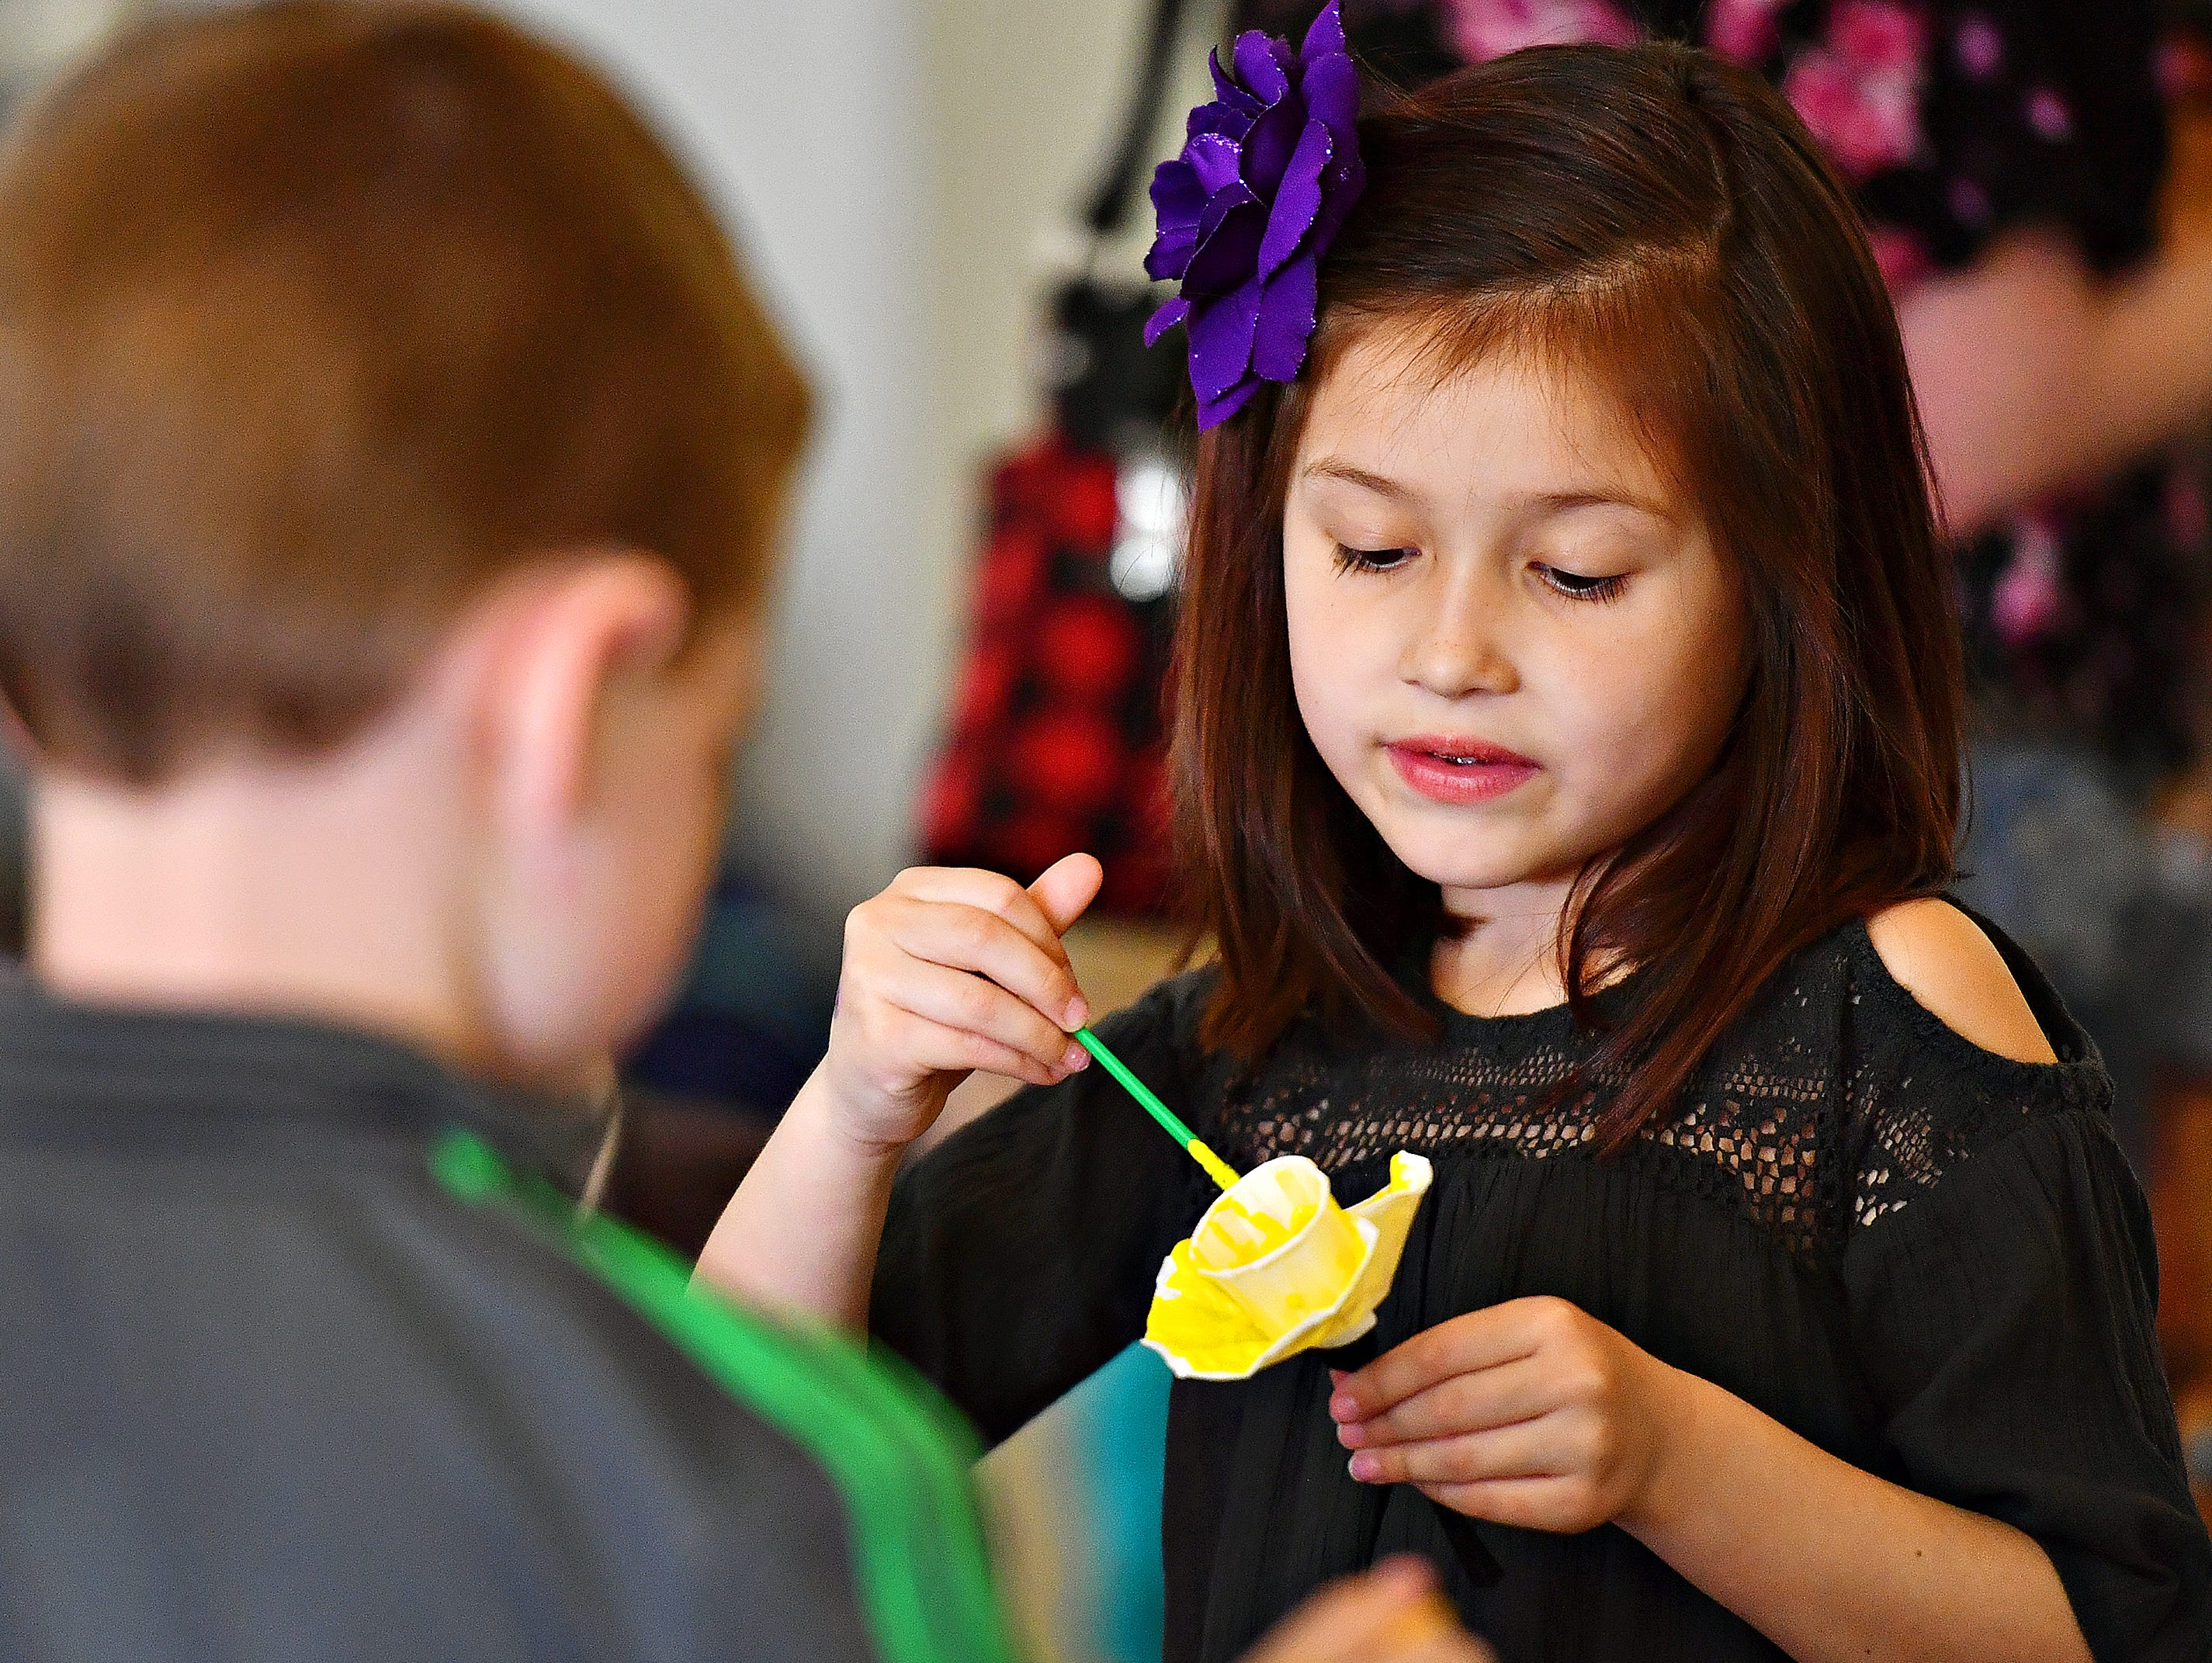 Sireyna MacNelly, 6, right, of Jackson Township, paints a daffodil with her cousin Evan Wagaman, 6, of North Codorus Township during Glatfelter Memorial Library's Annual Read-a-thon event in Spring Grove, Saturday, April 6, 2019. Dawn J. Sagert photo